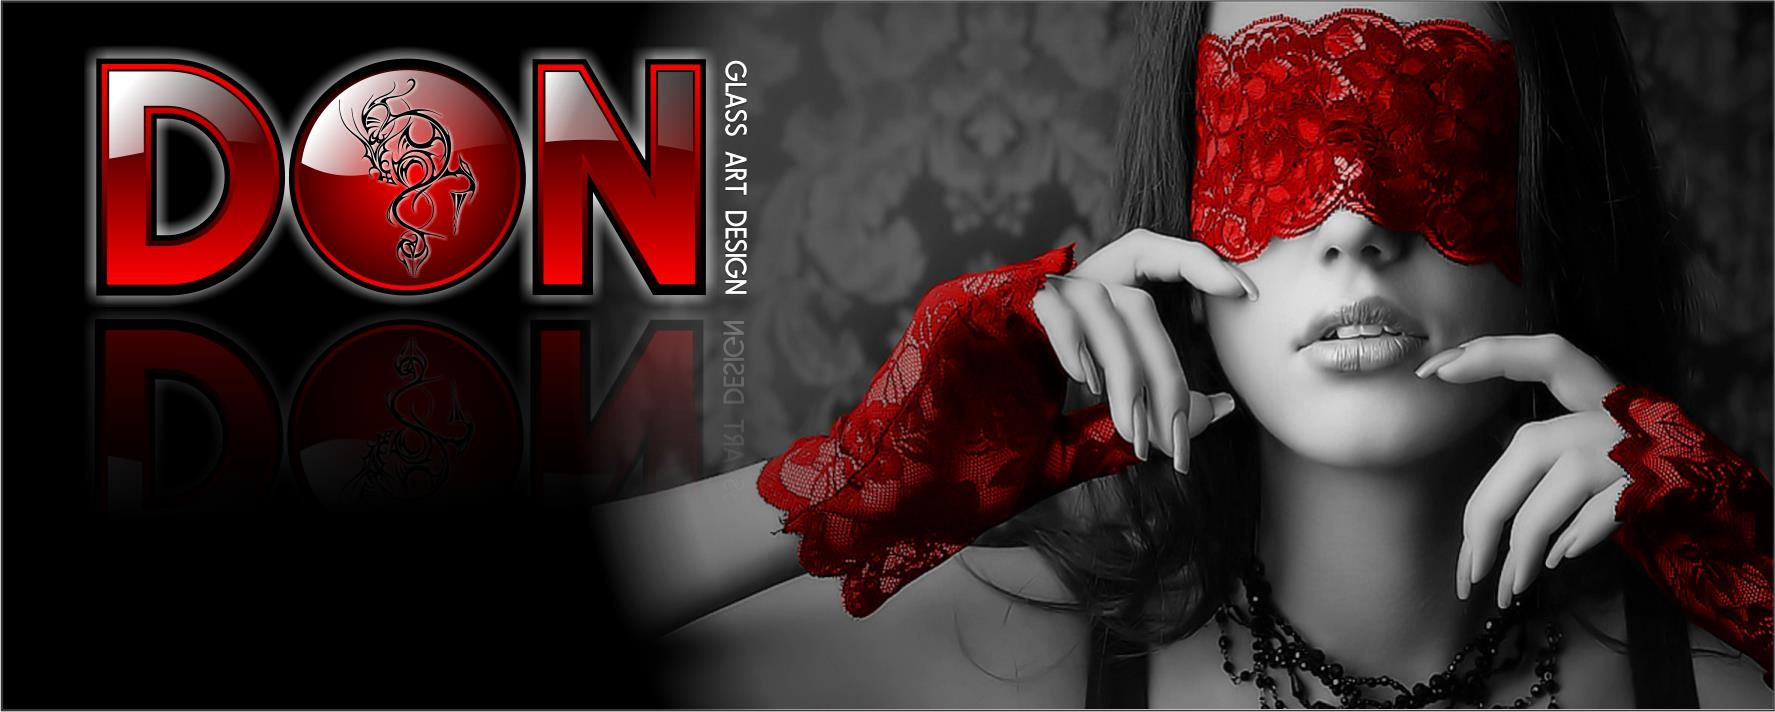 facebook, banners, red, lady, beauty, beautiful, woman, banner, graphics, designs,